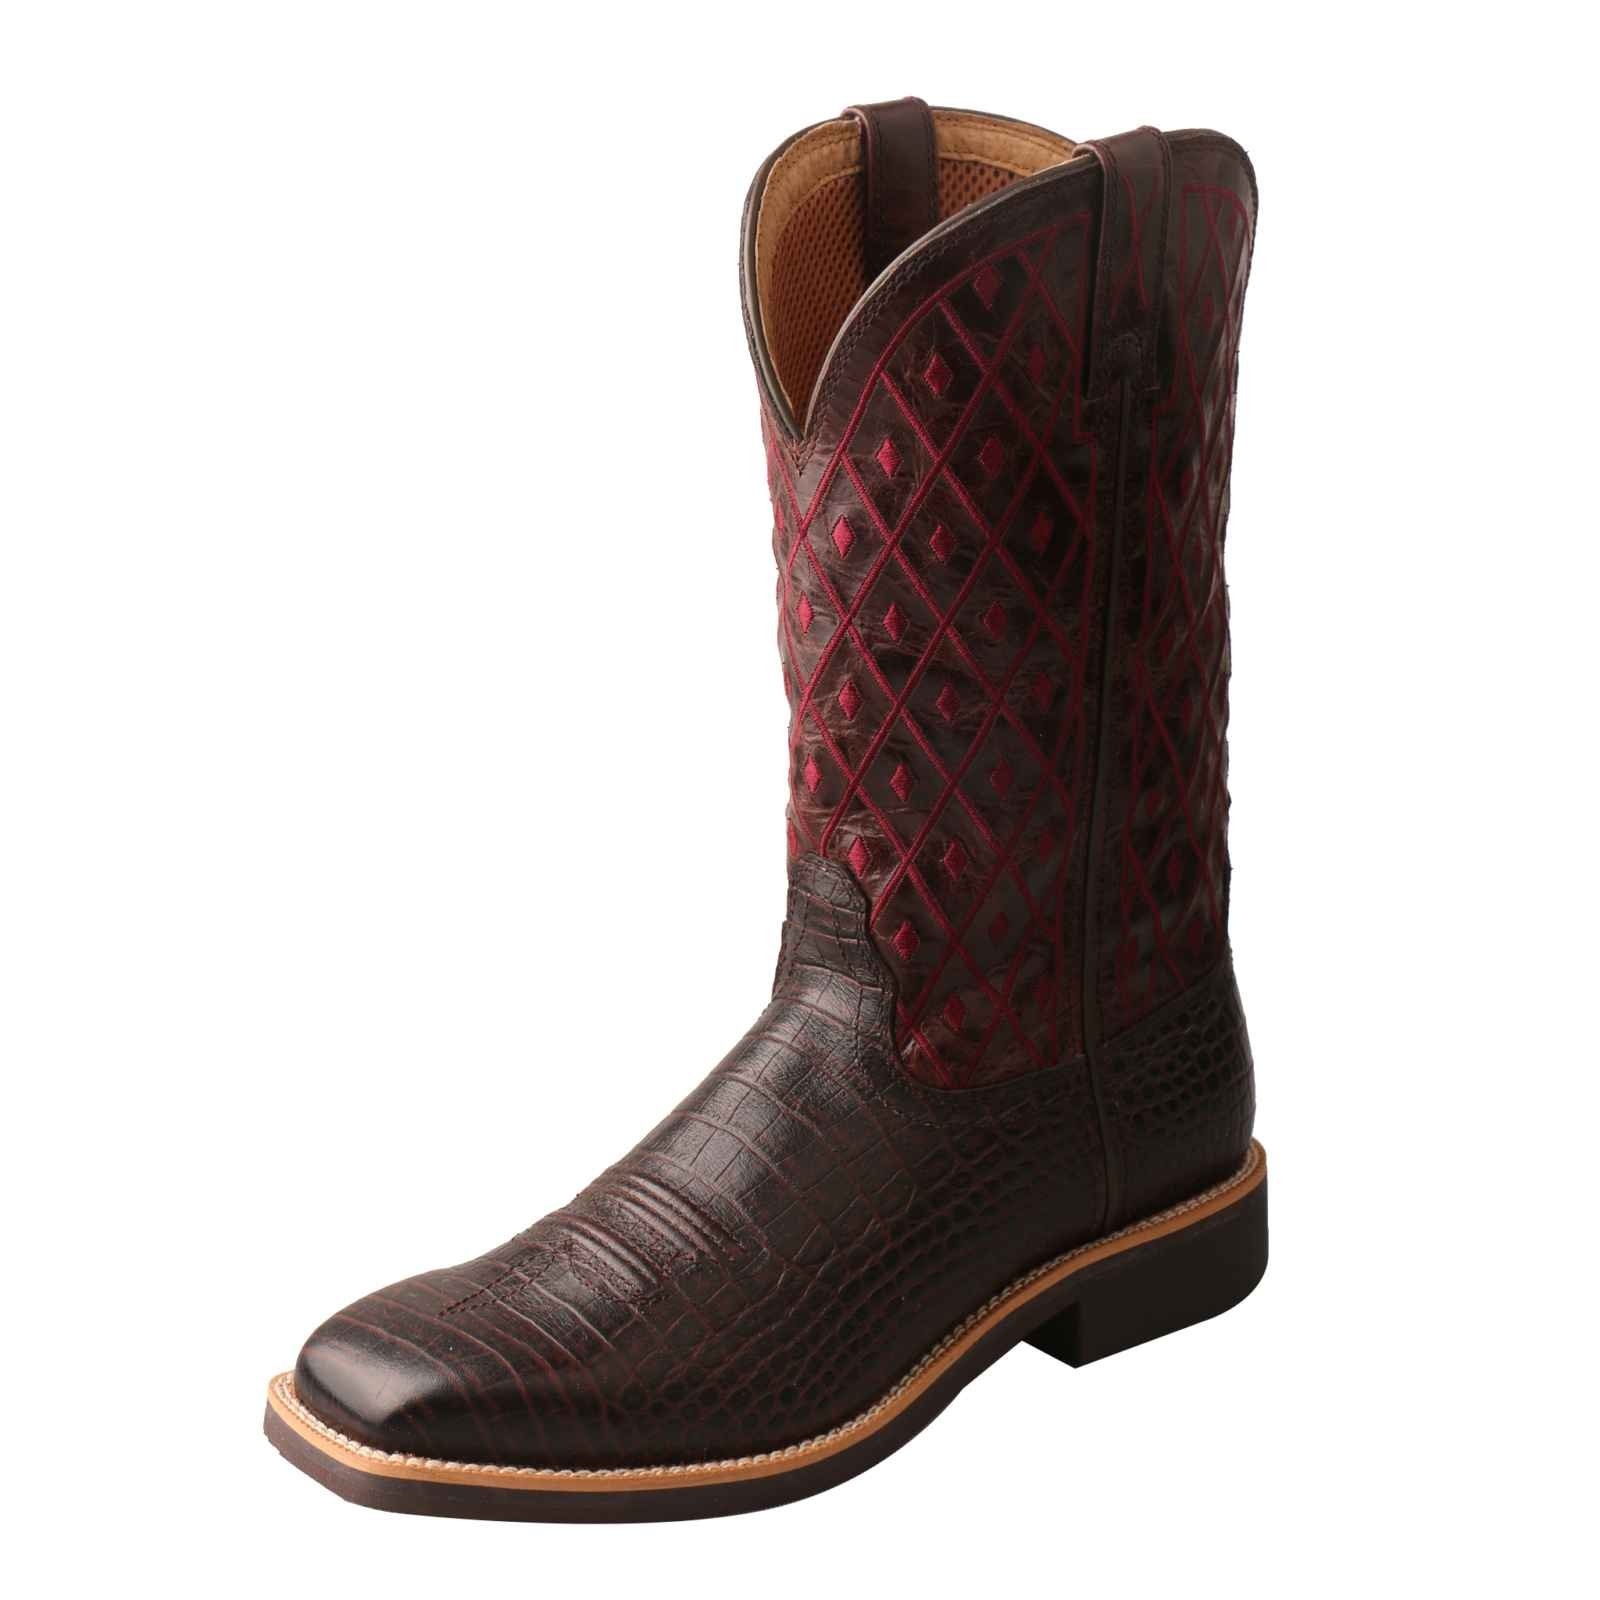 Twisted X Women's Top Hand Caiman Print Square Toe Cowgirl Boots (6.5)